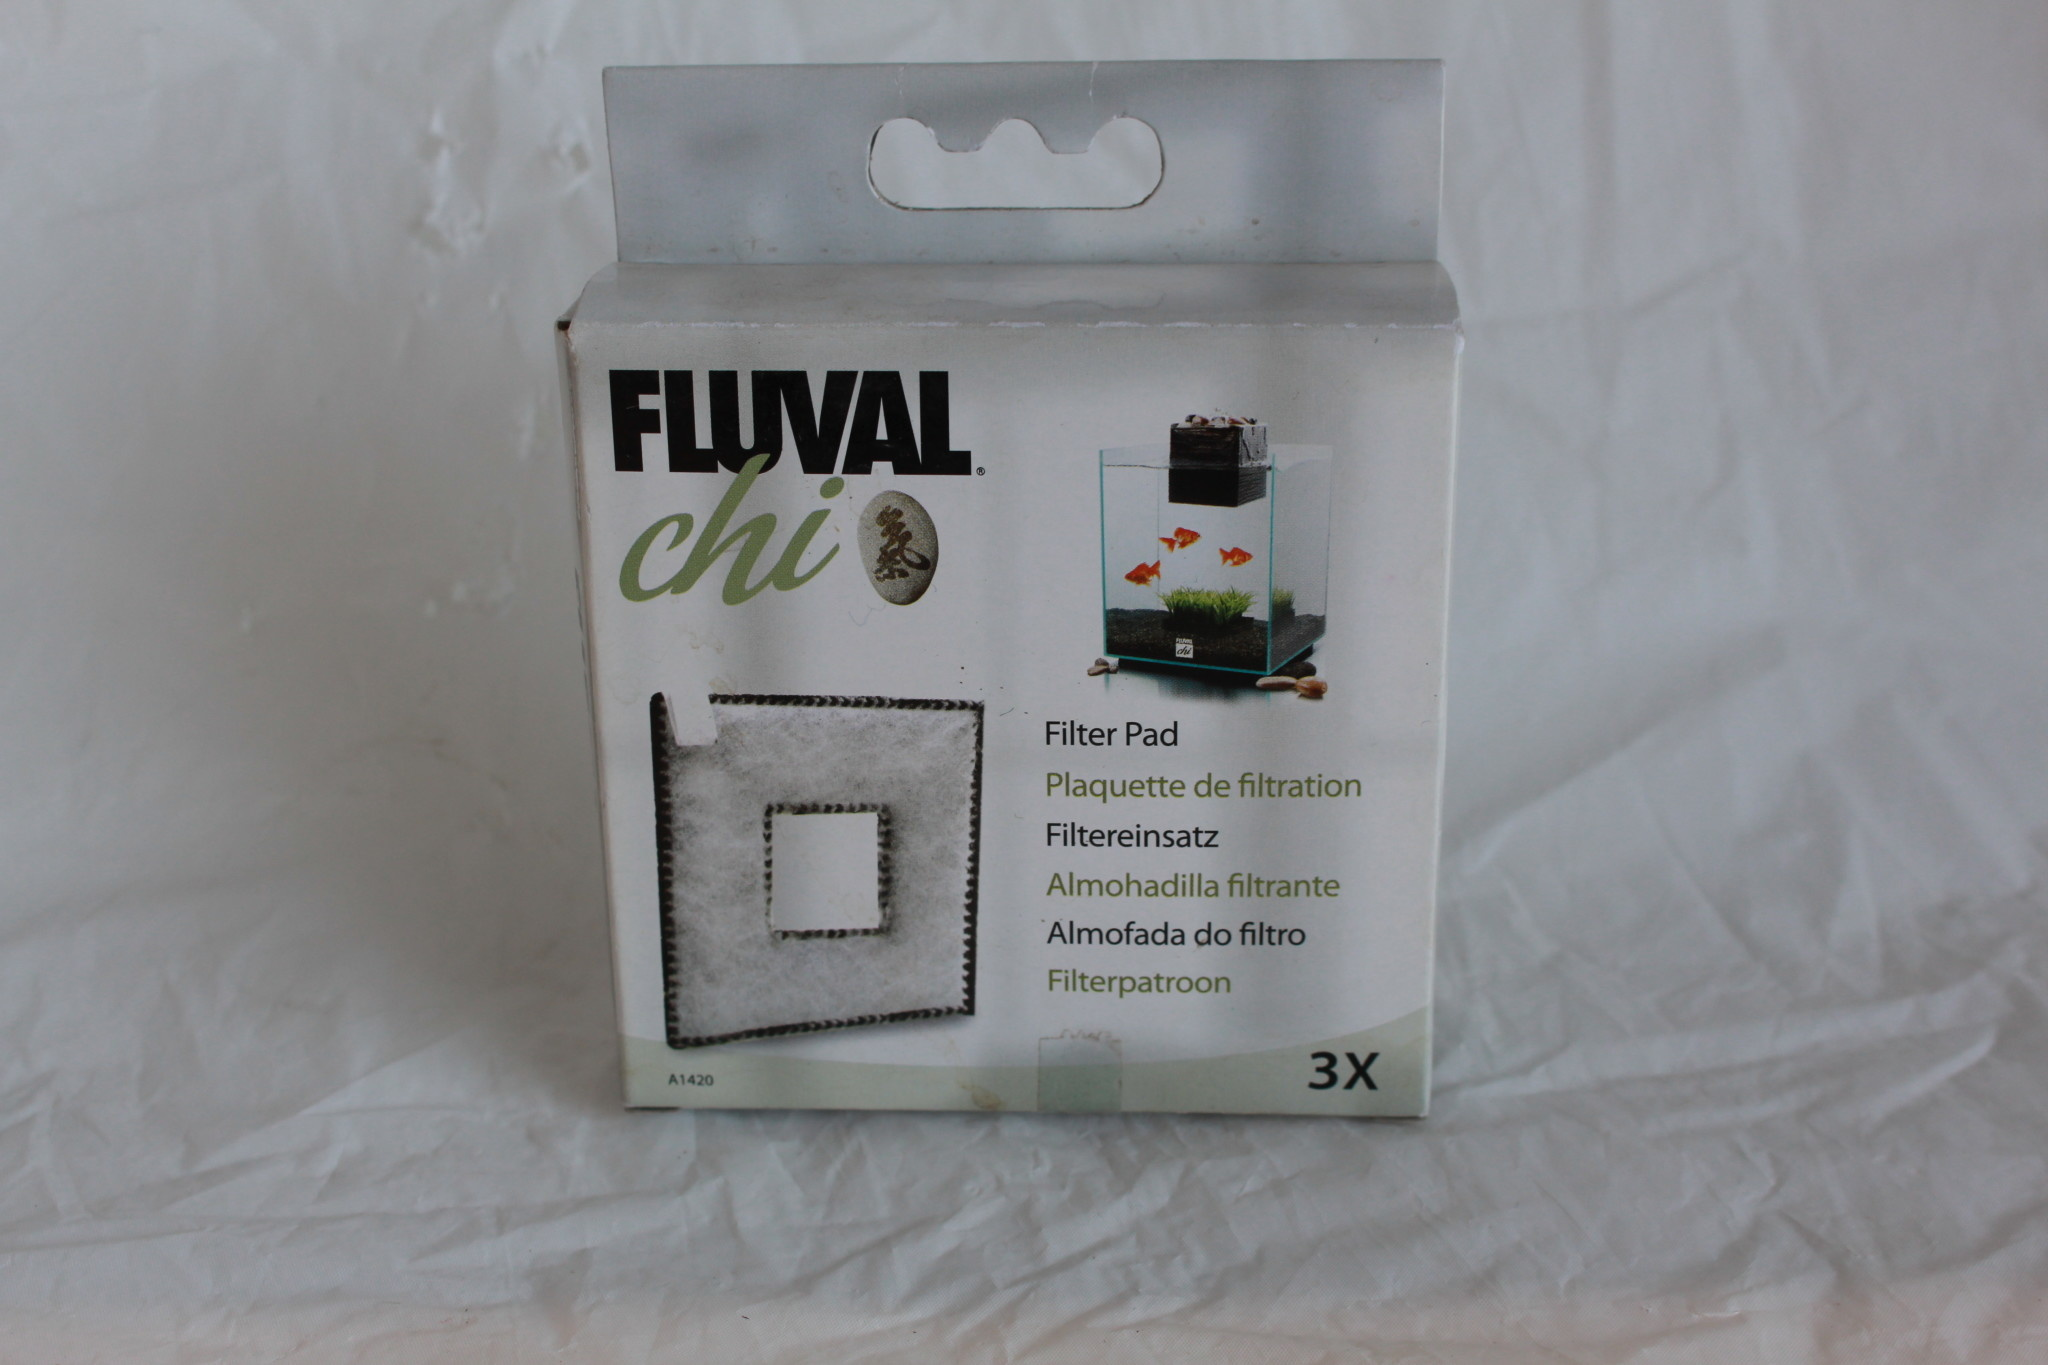 Filter Pad for Fluval Chi 3-pack-2